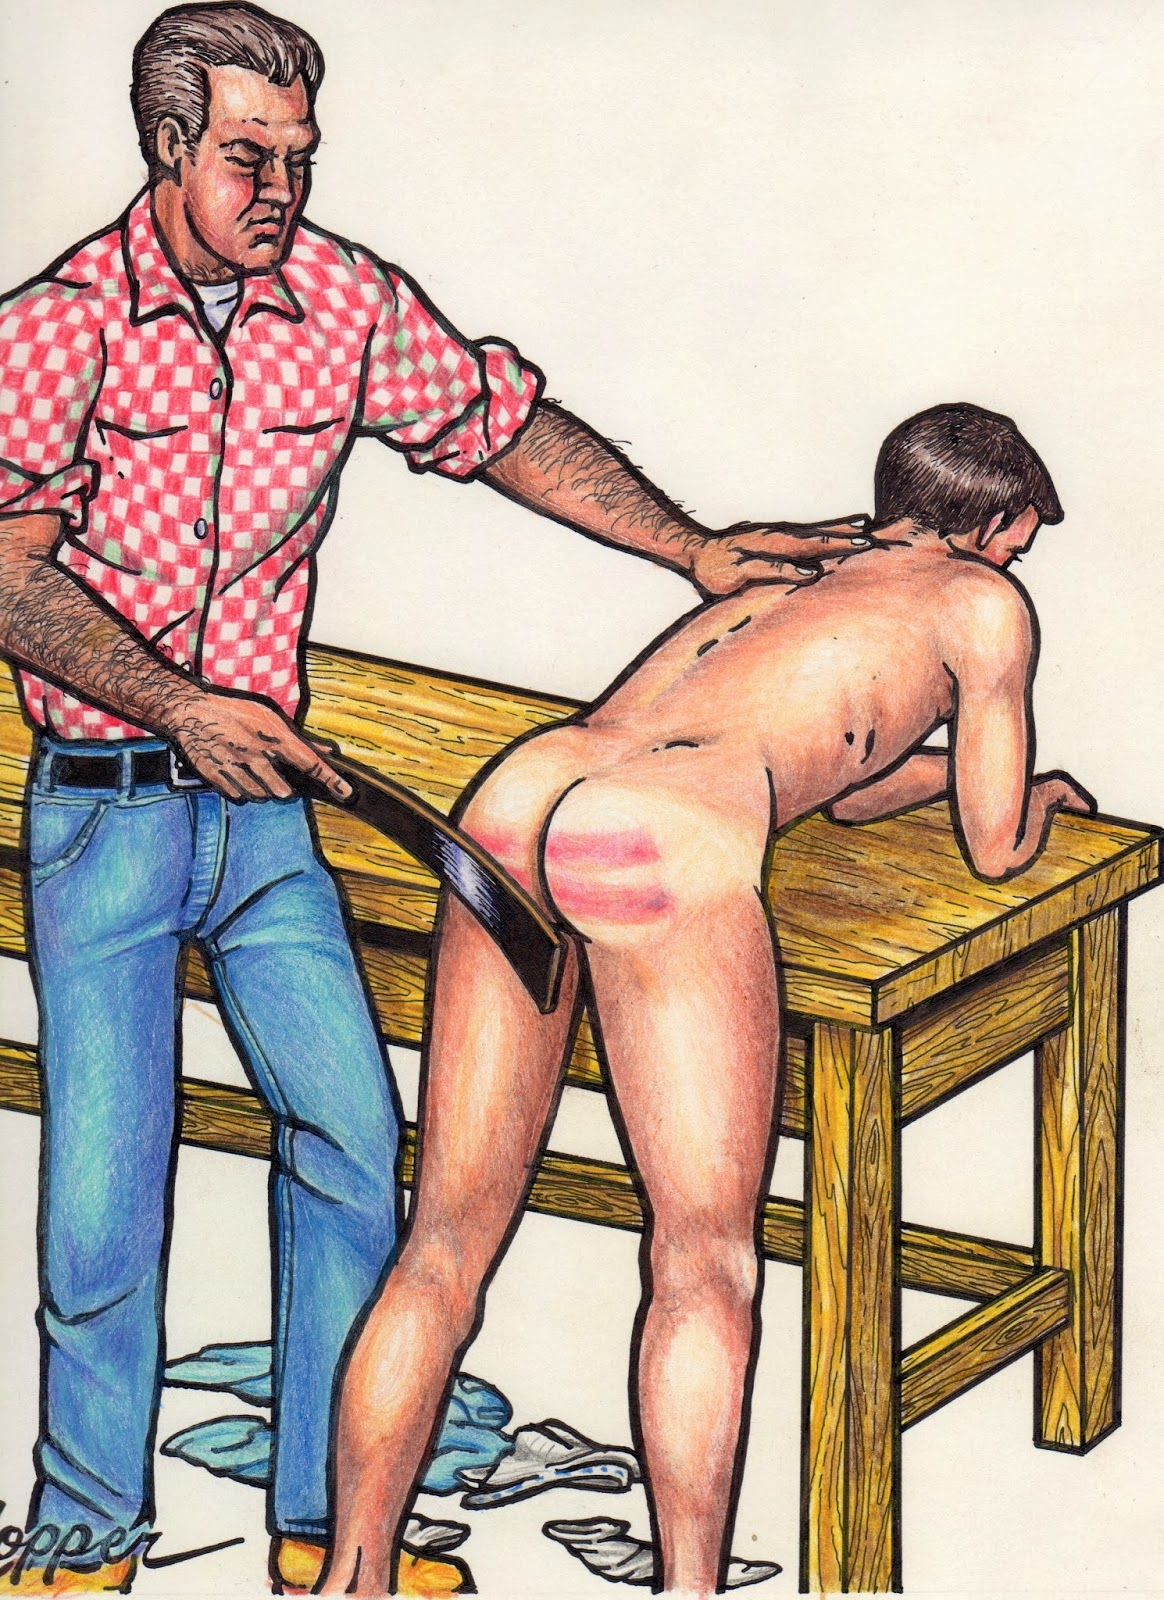 Gay spanking drawings and art hot emo boy 9